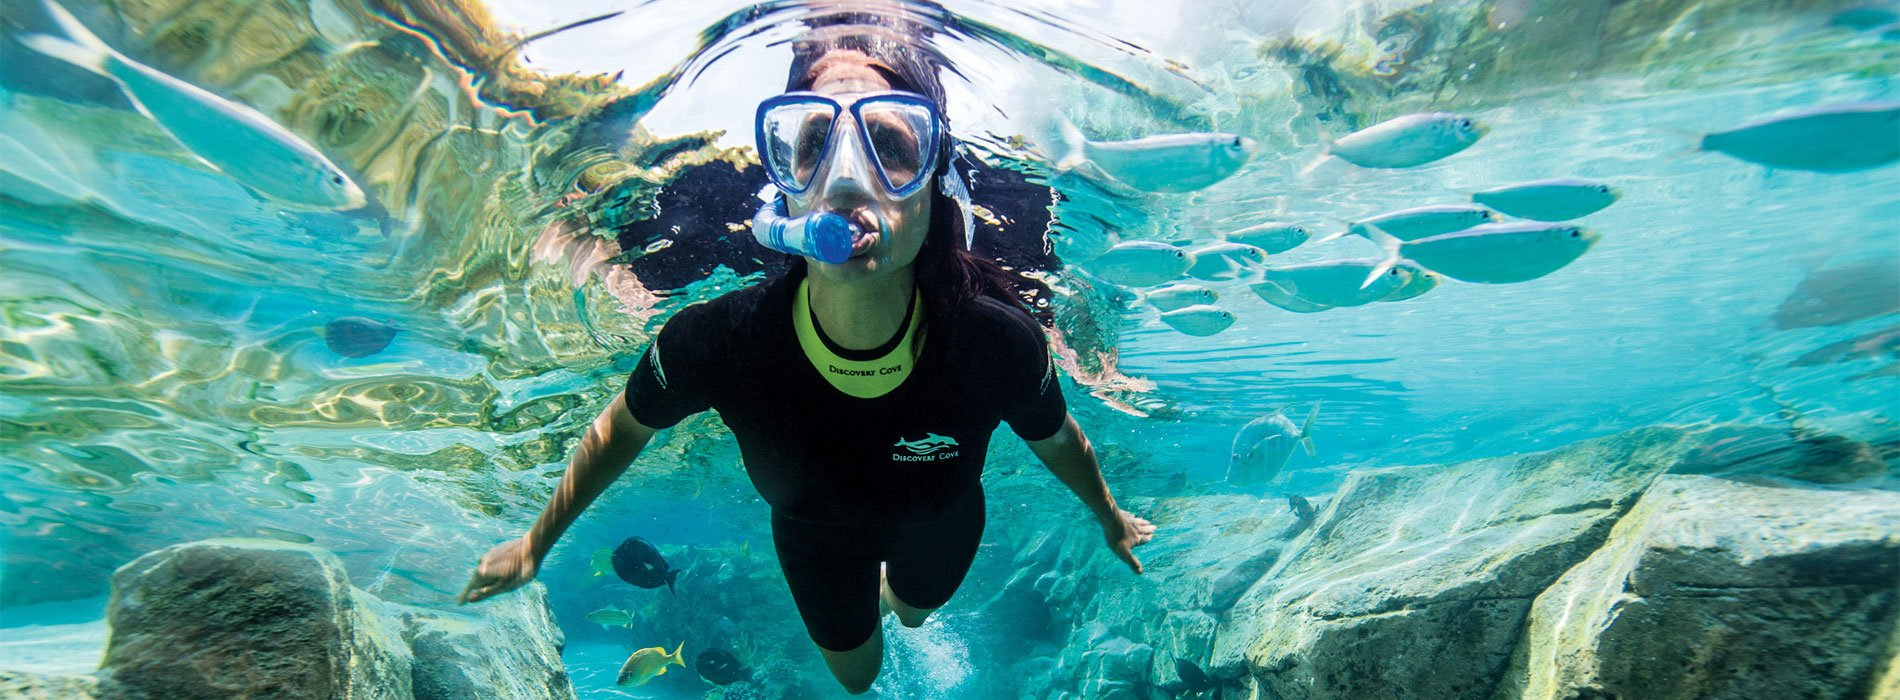 Visitor snorkeling in Discovery Cove Grand Reef Tropical Habitat